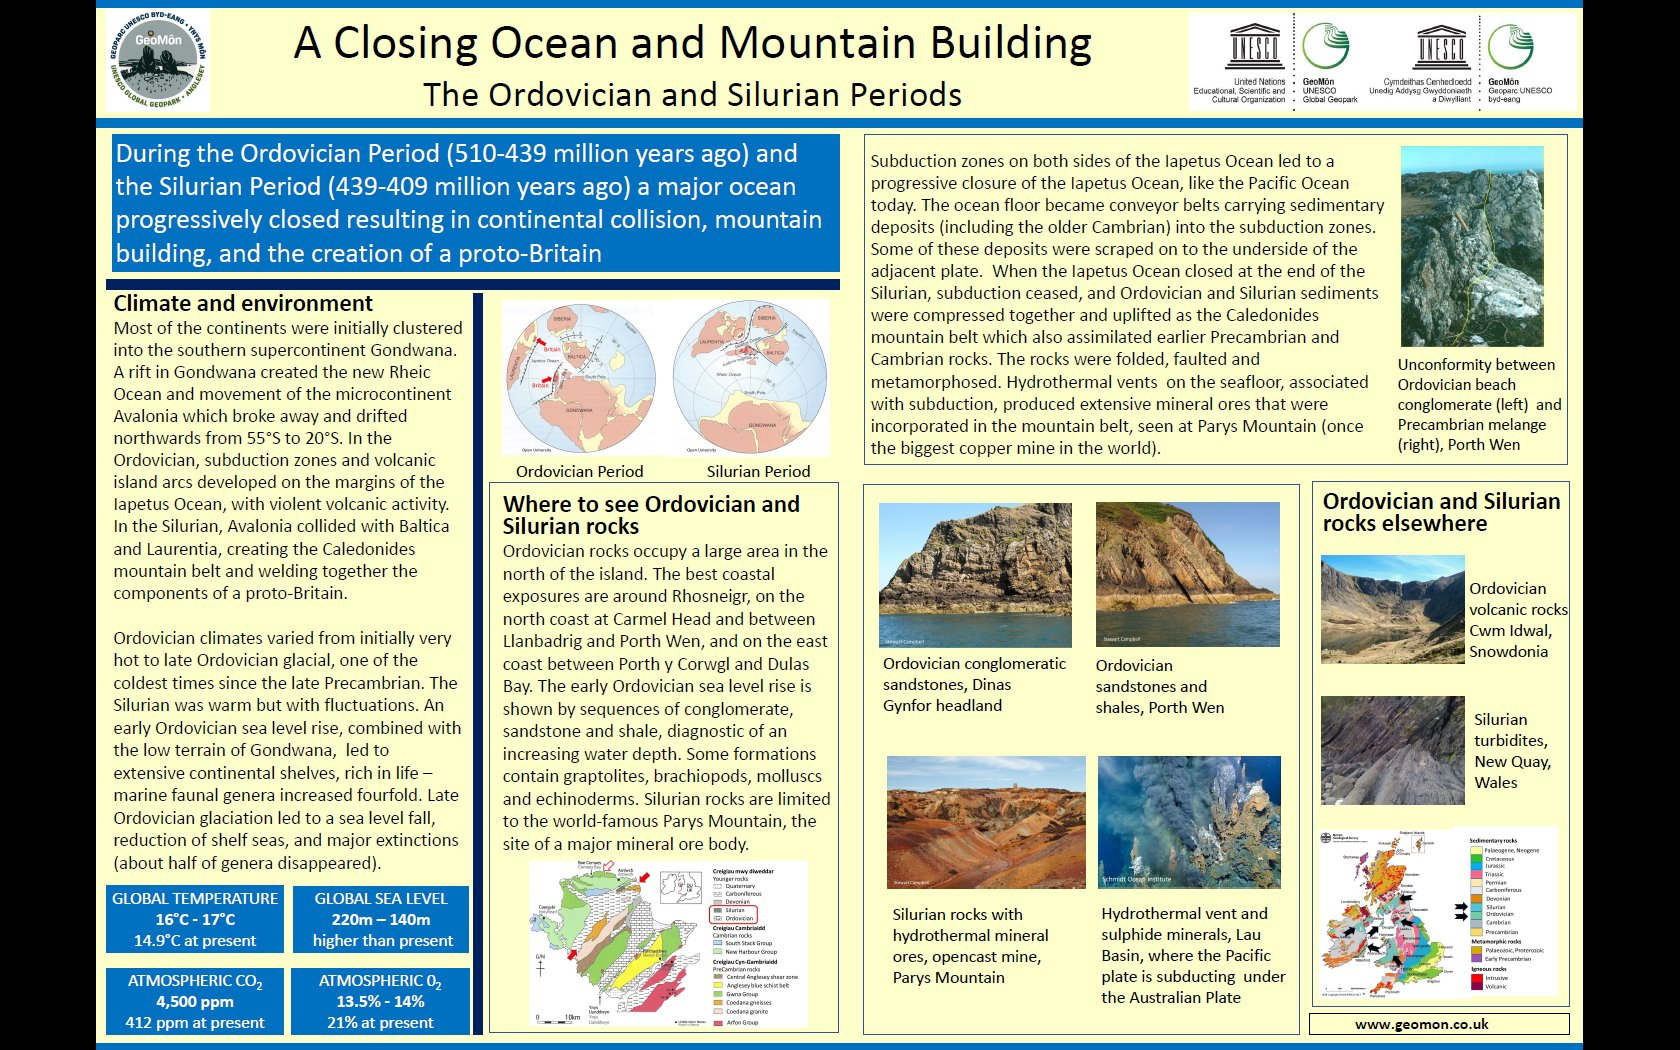 Poster showing geological conditions and climate in Ordovician and Silurian times